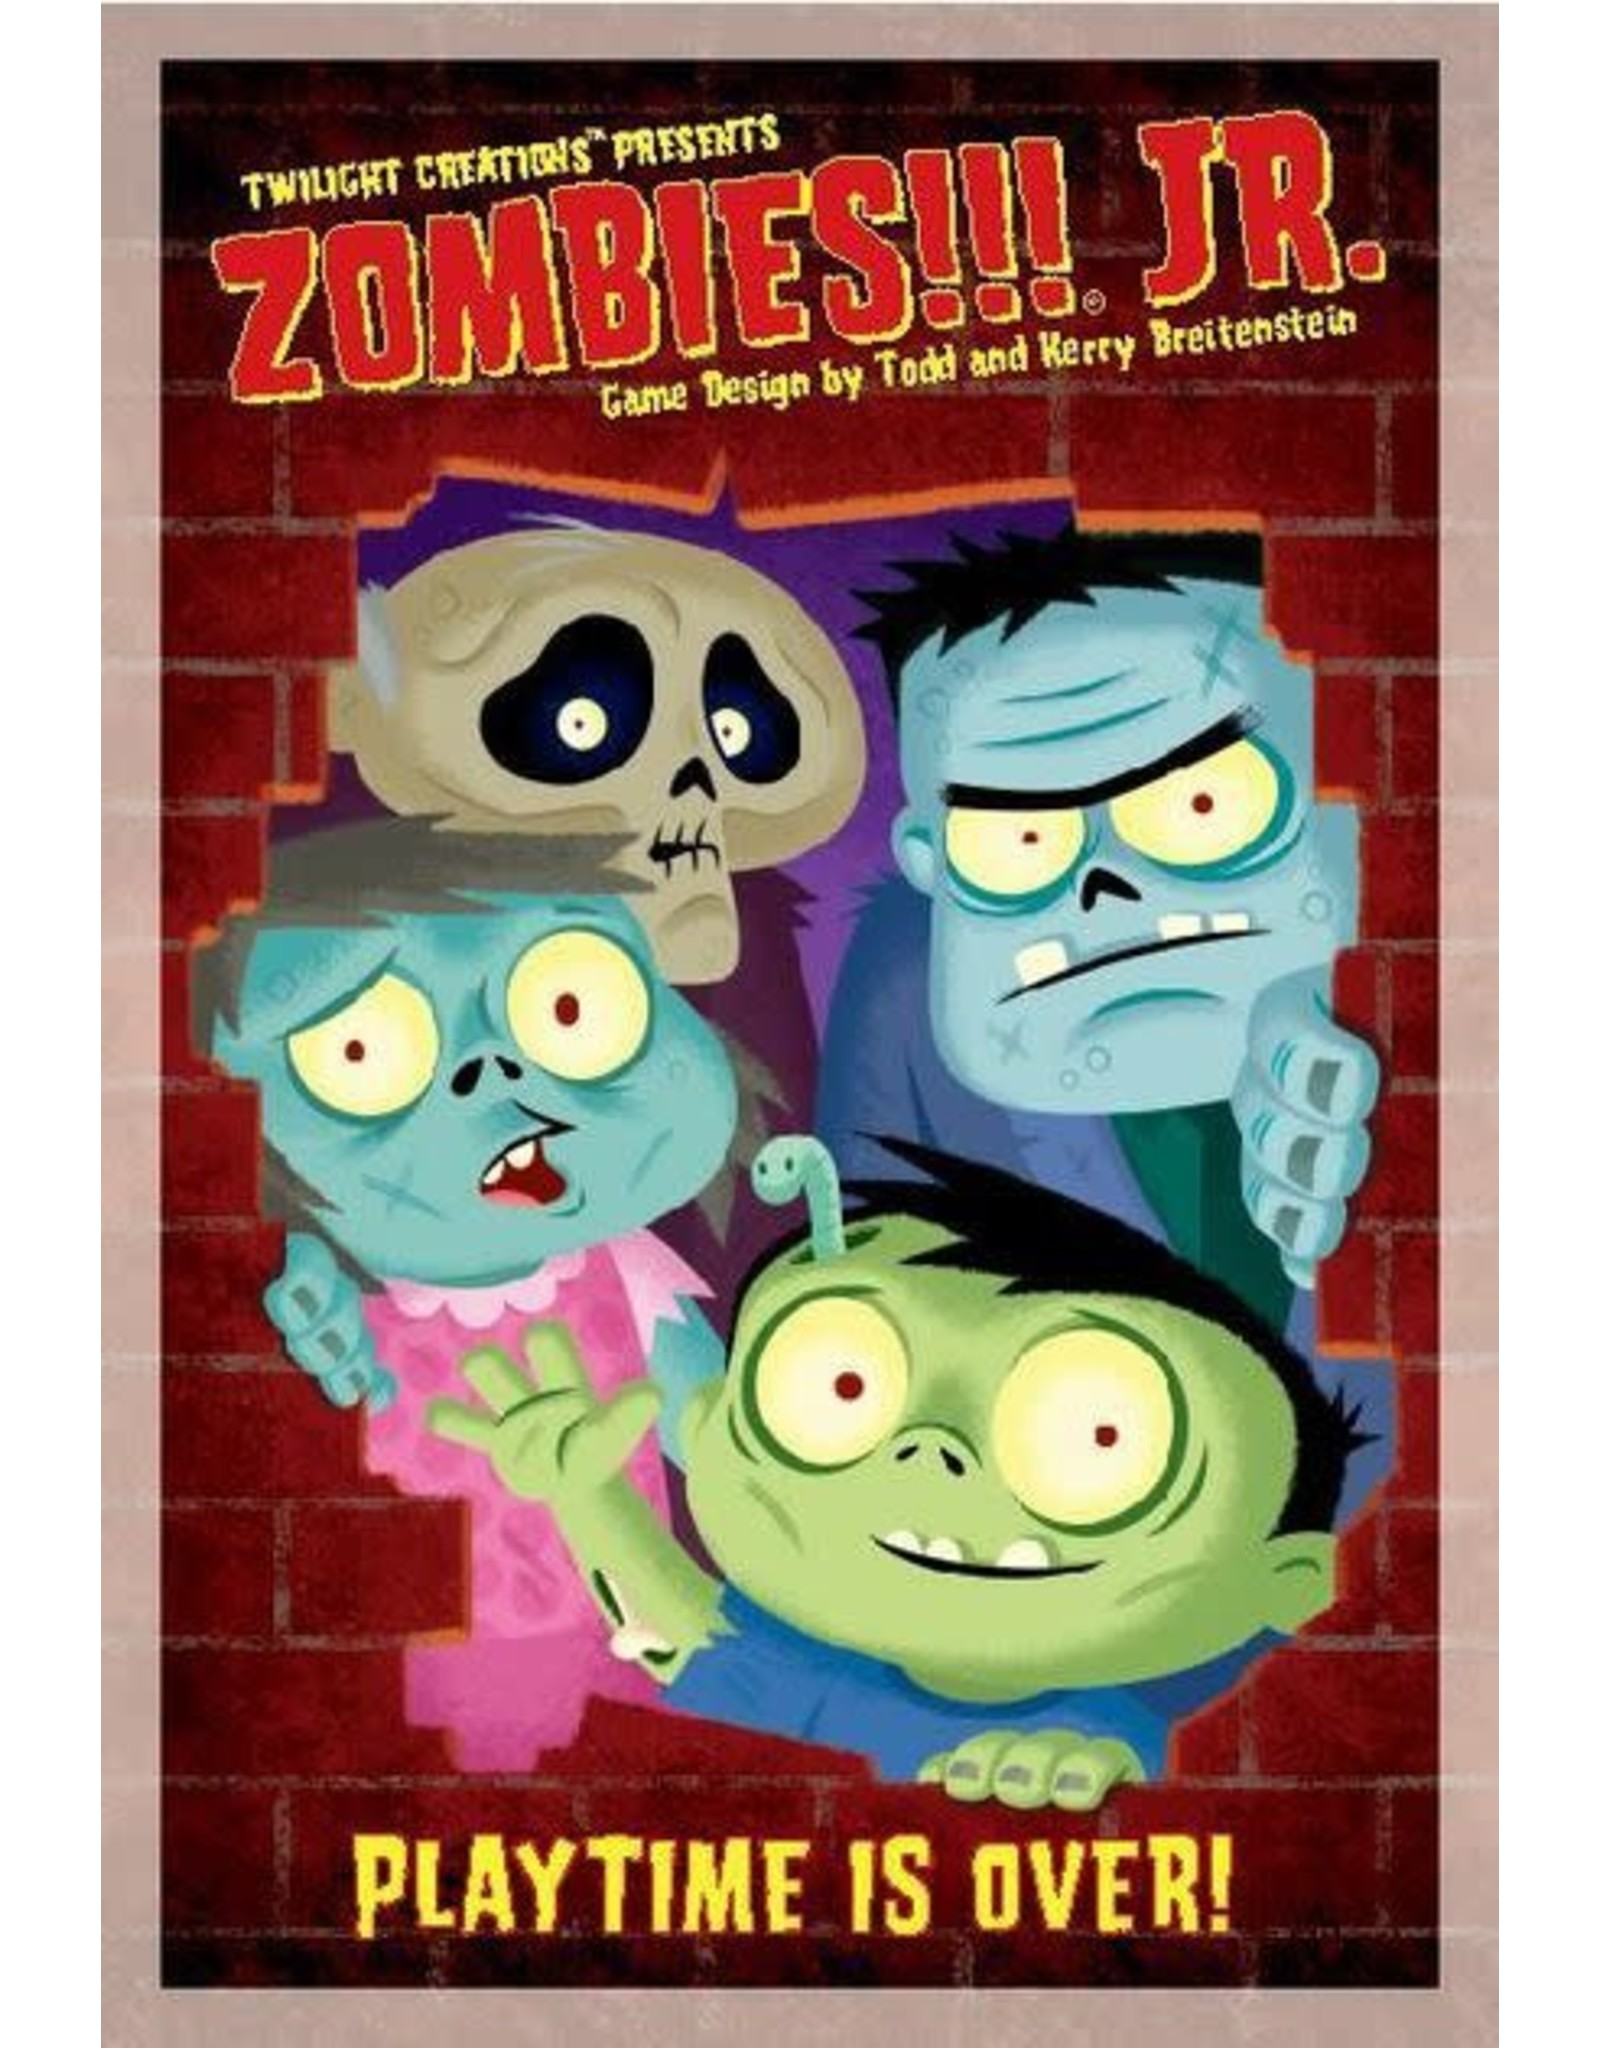 Zombies Jr